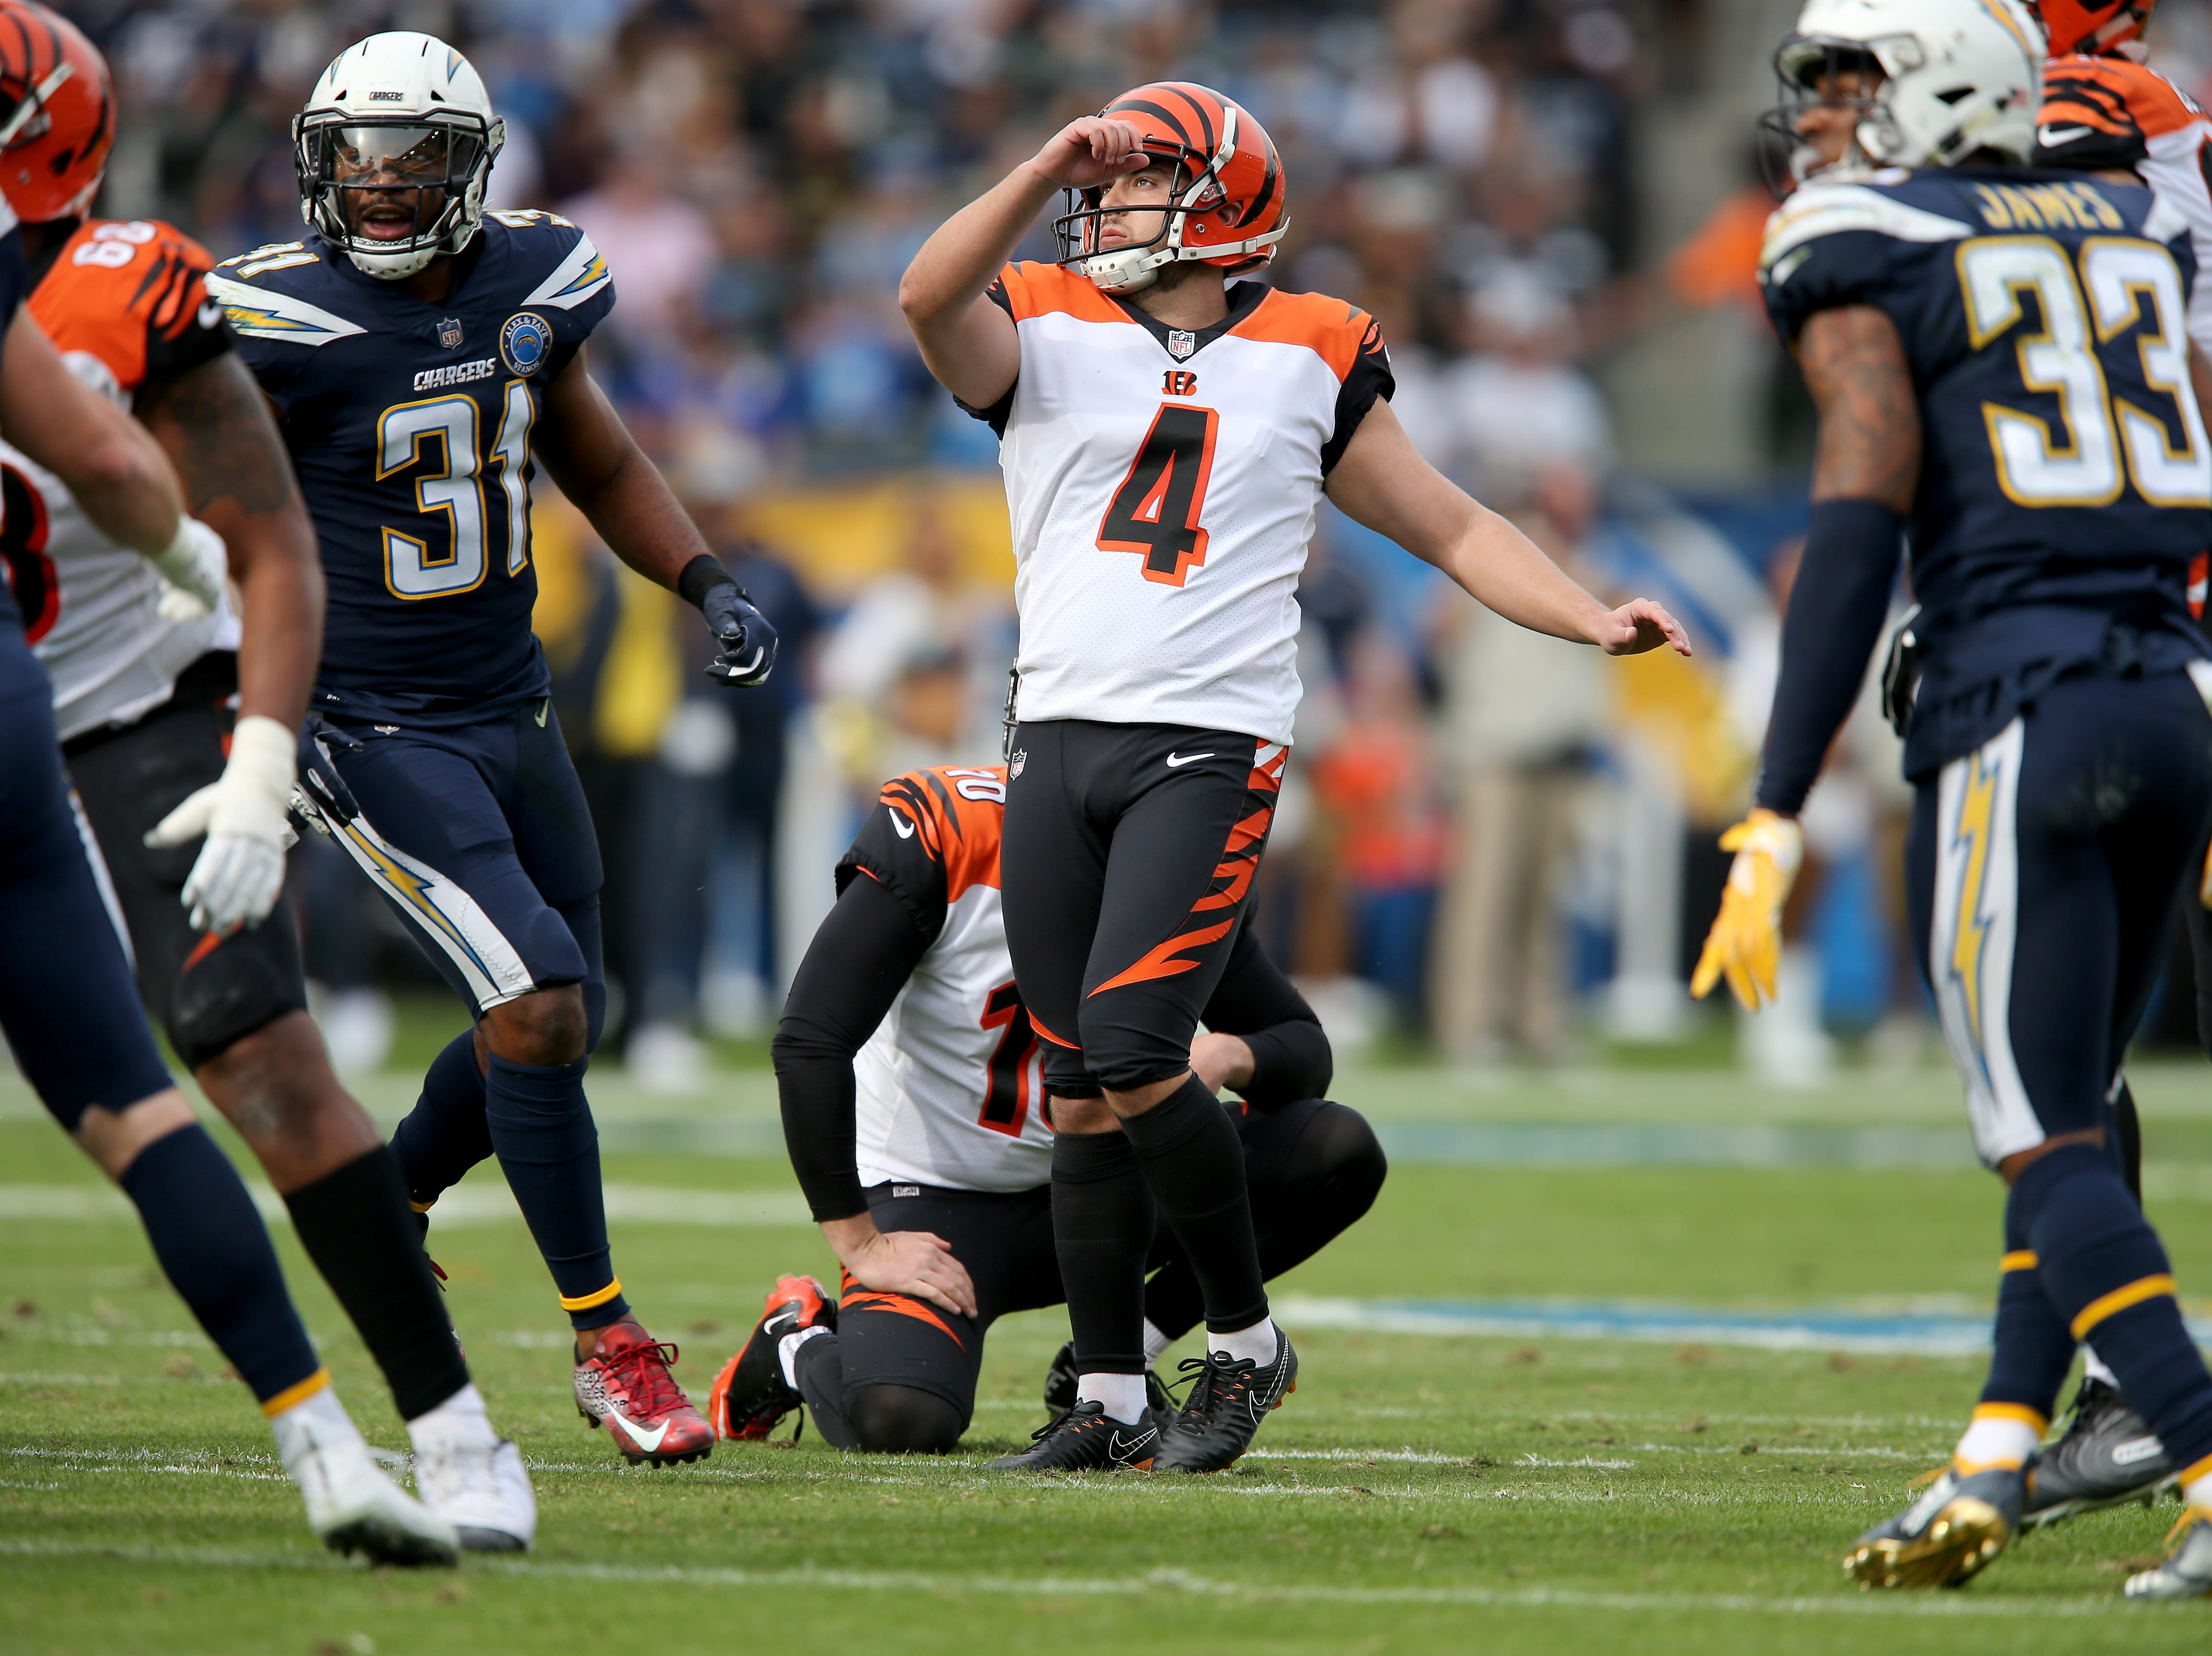 Cincinnati Bengals kicker Randy Bullock (4) kicks a field goal in the first quarter of a Week 14 NFL football game against the Los Angeles Chargers, Sunday, Dec. 9, 2018, at StubHub Center in Carson, California.